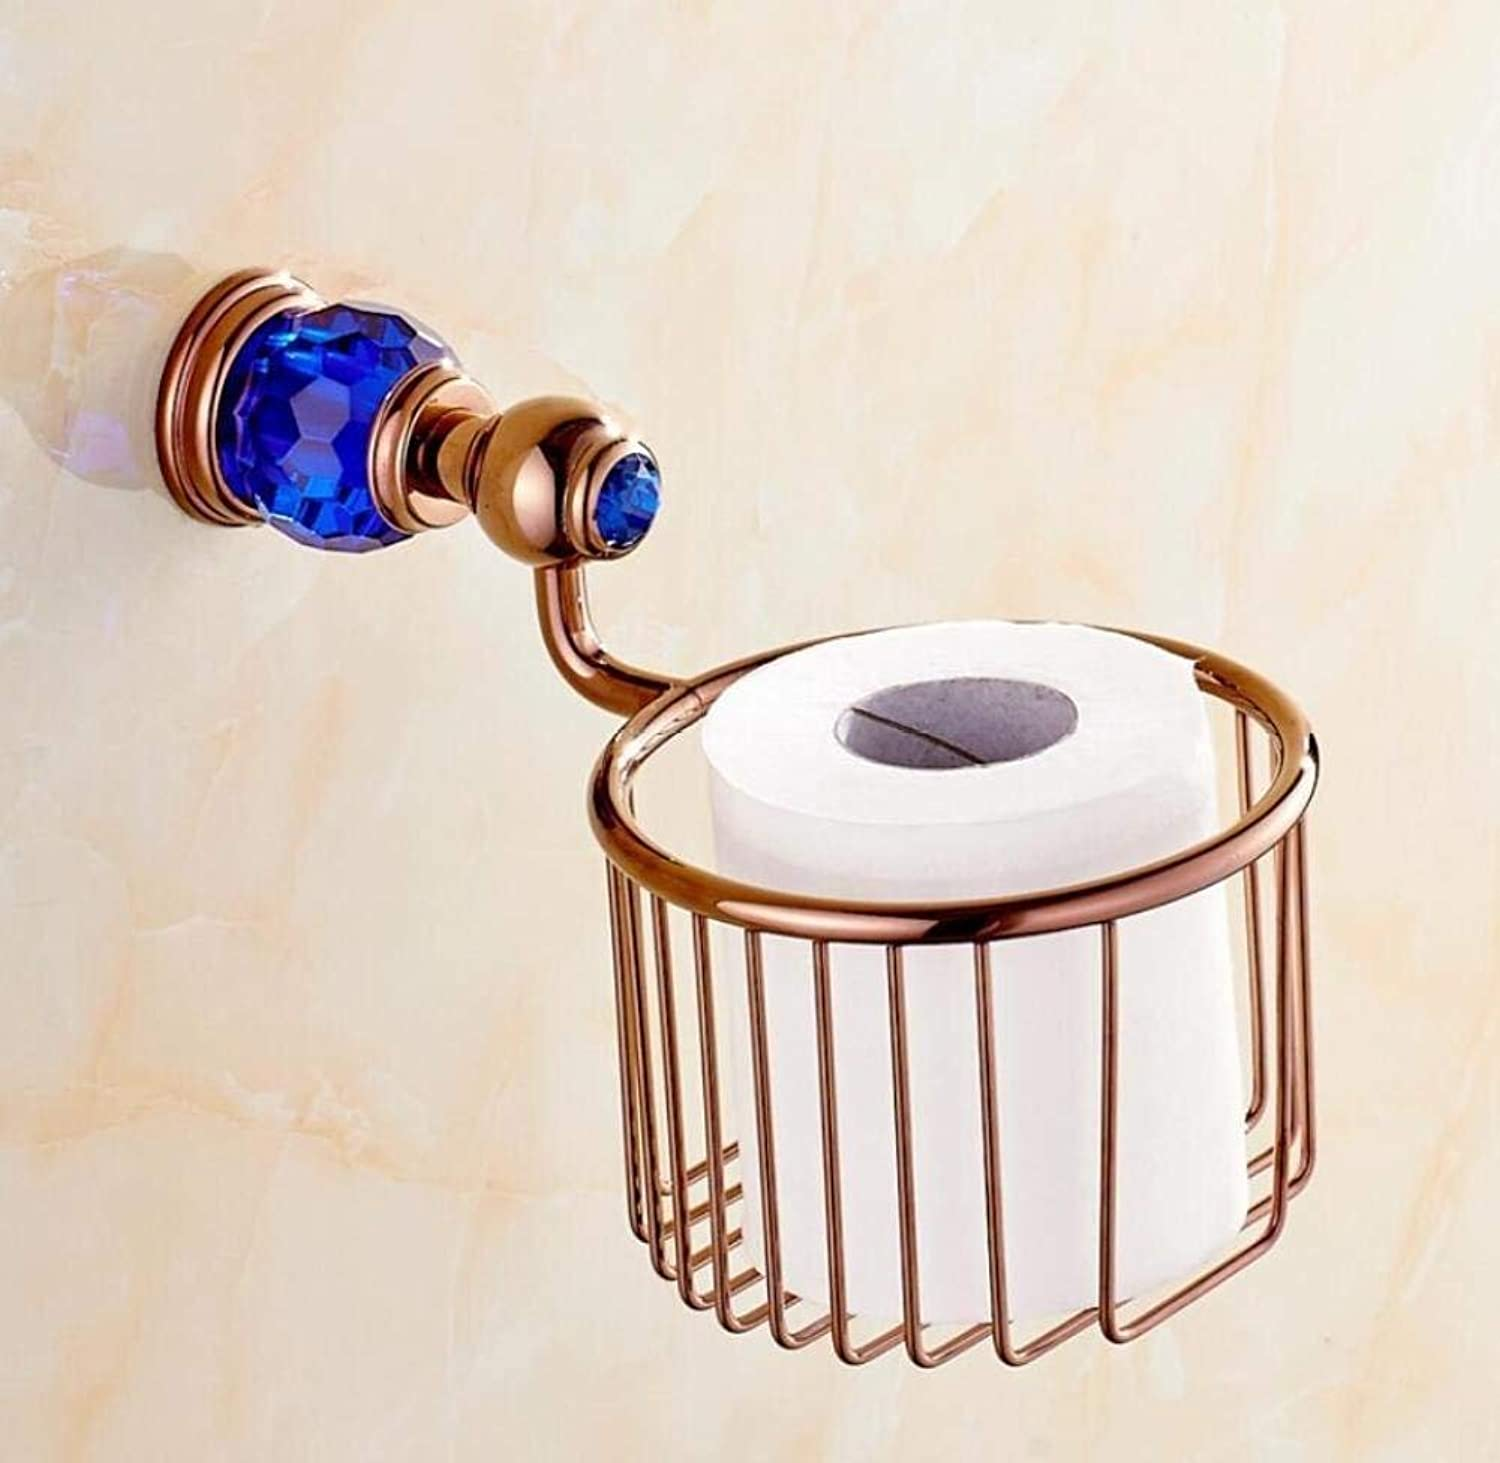 Paper Towels Copper Crystal Shopping Cart Door-Paper, Toilet Paper European-Style Bathroom Cylinder-Paper Door Door-Roll Paper Towels Modern Pendant,B,9  13cm